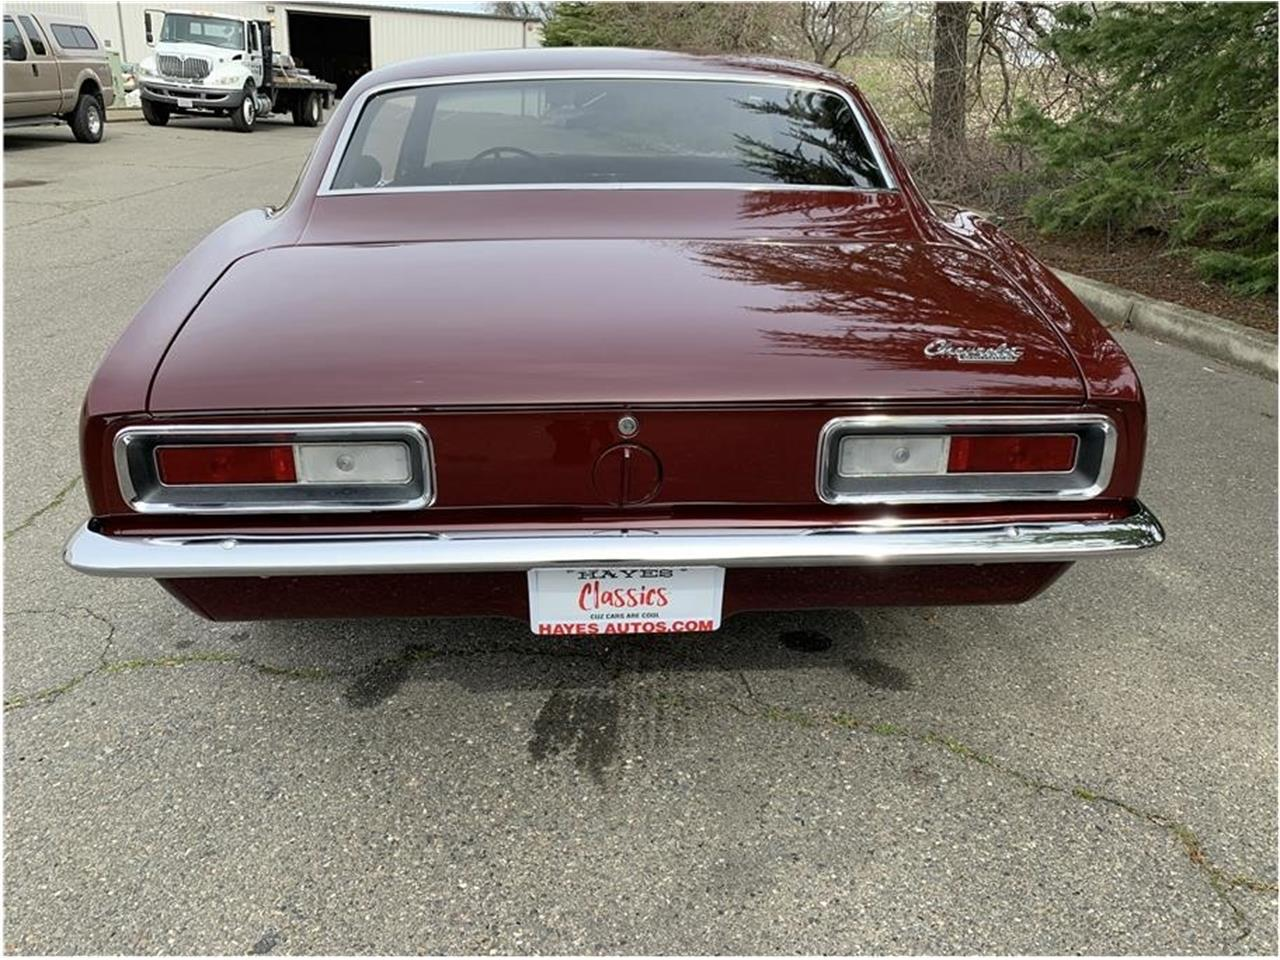 Large Picture of 1967 Camaro located in Roseville California - $37,000.00 - PL6F